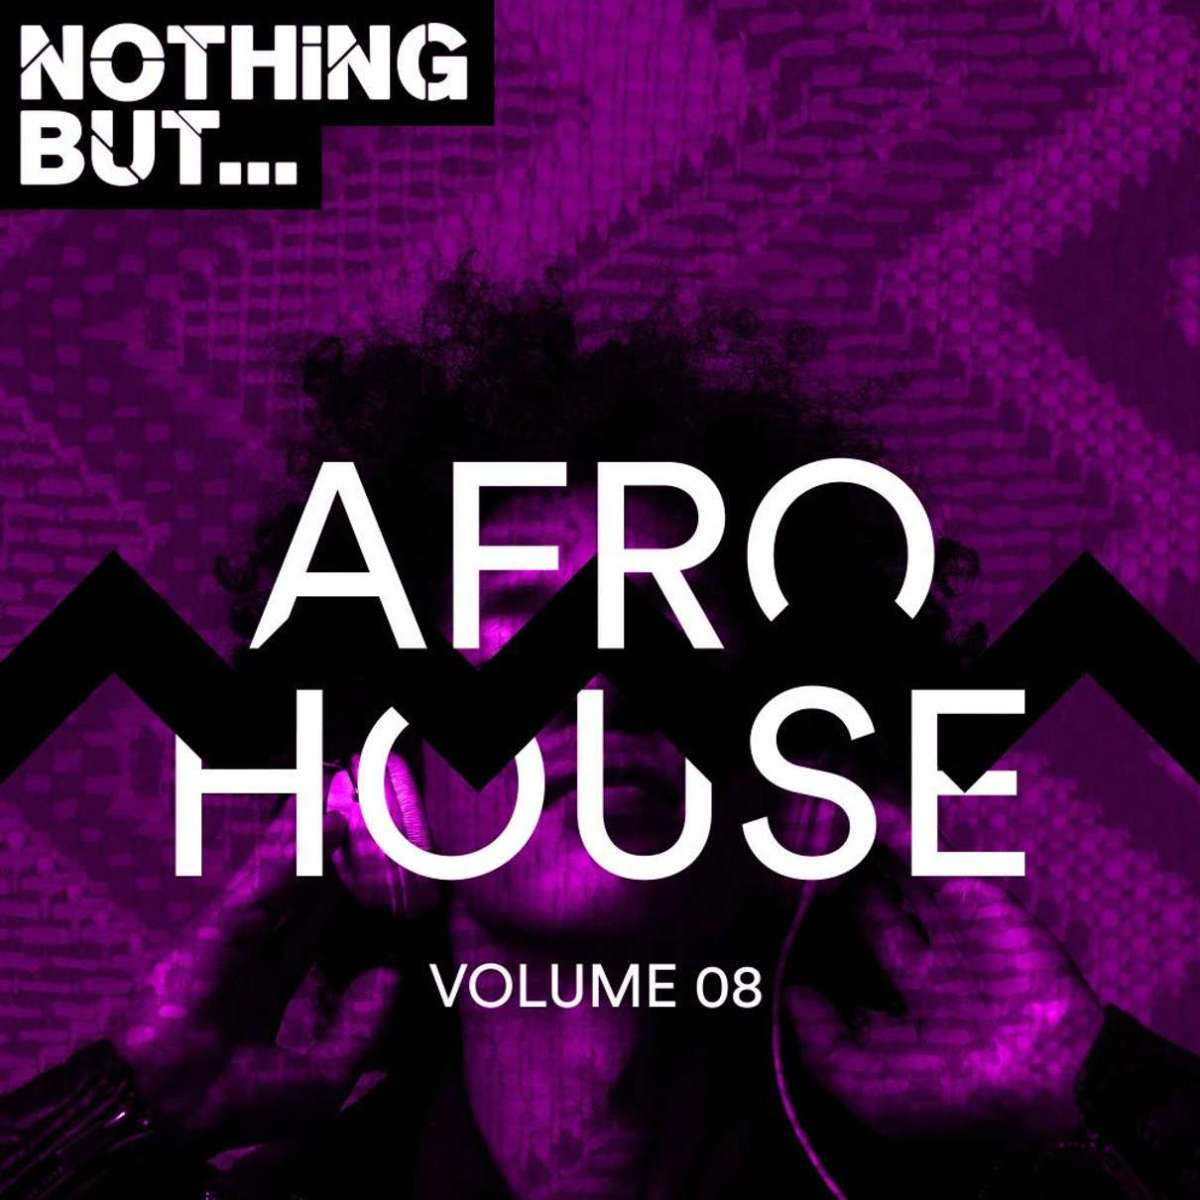 VA - Nothing But... Afro House, Vol. 08